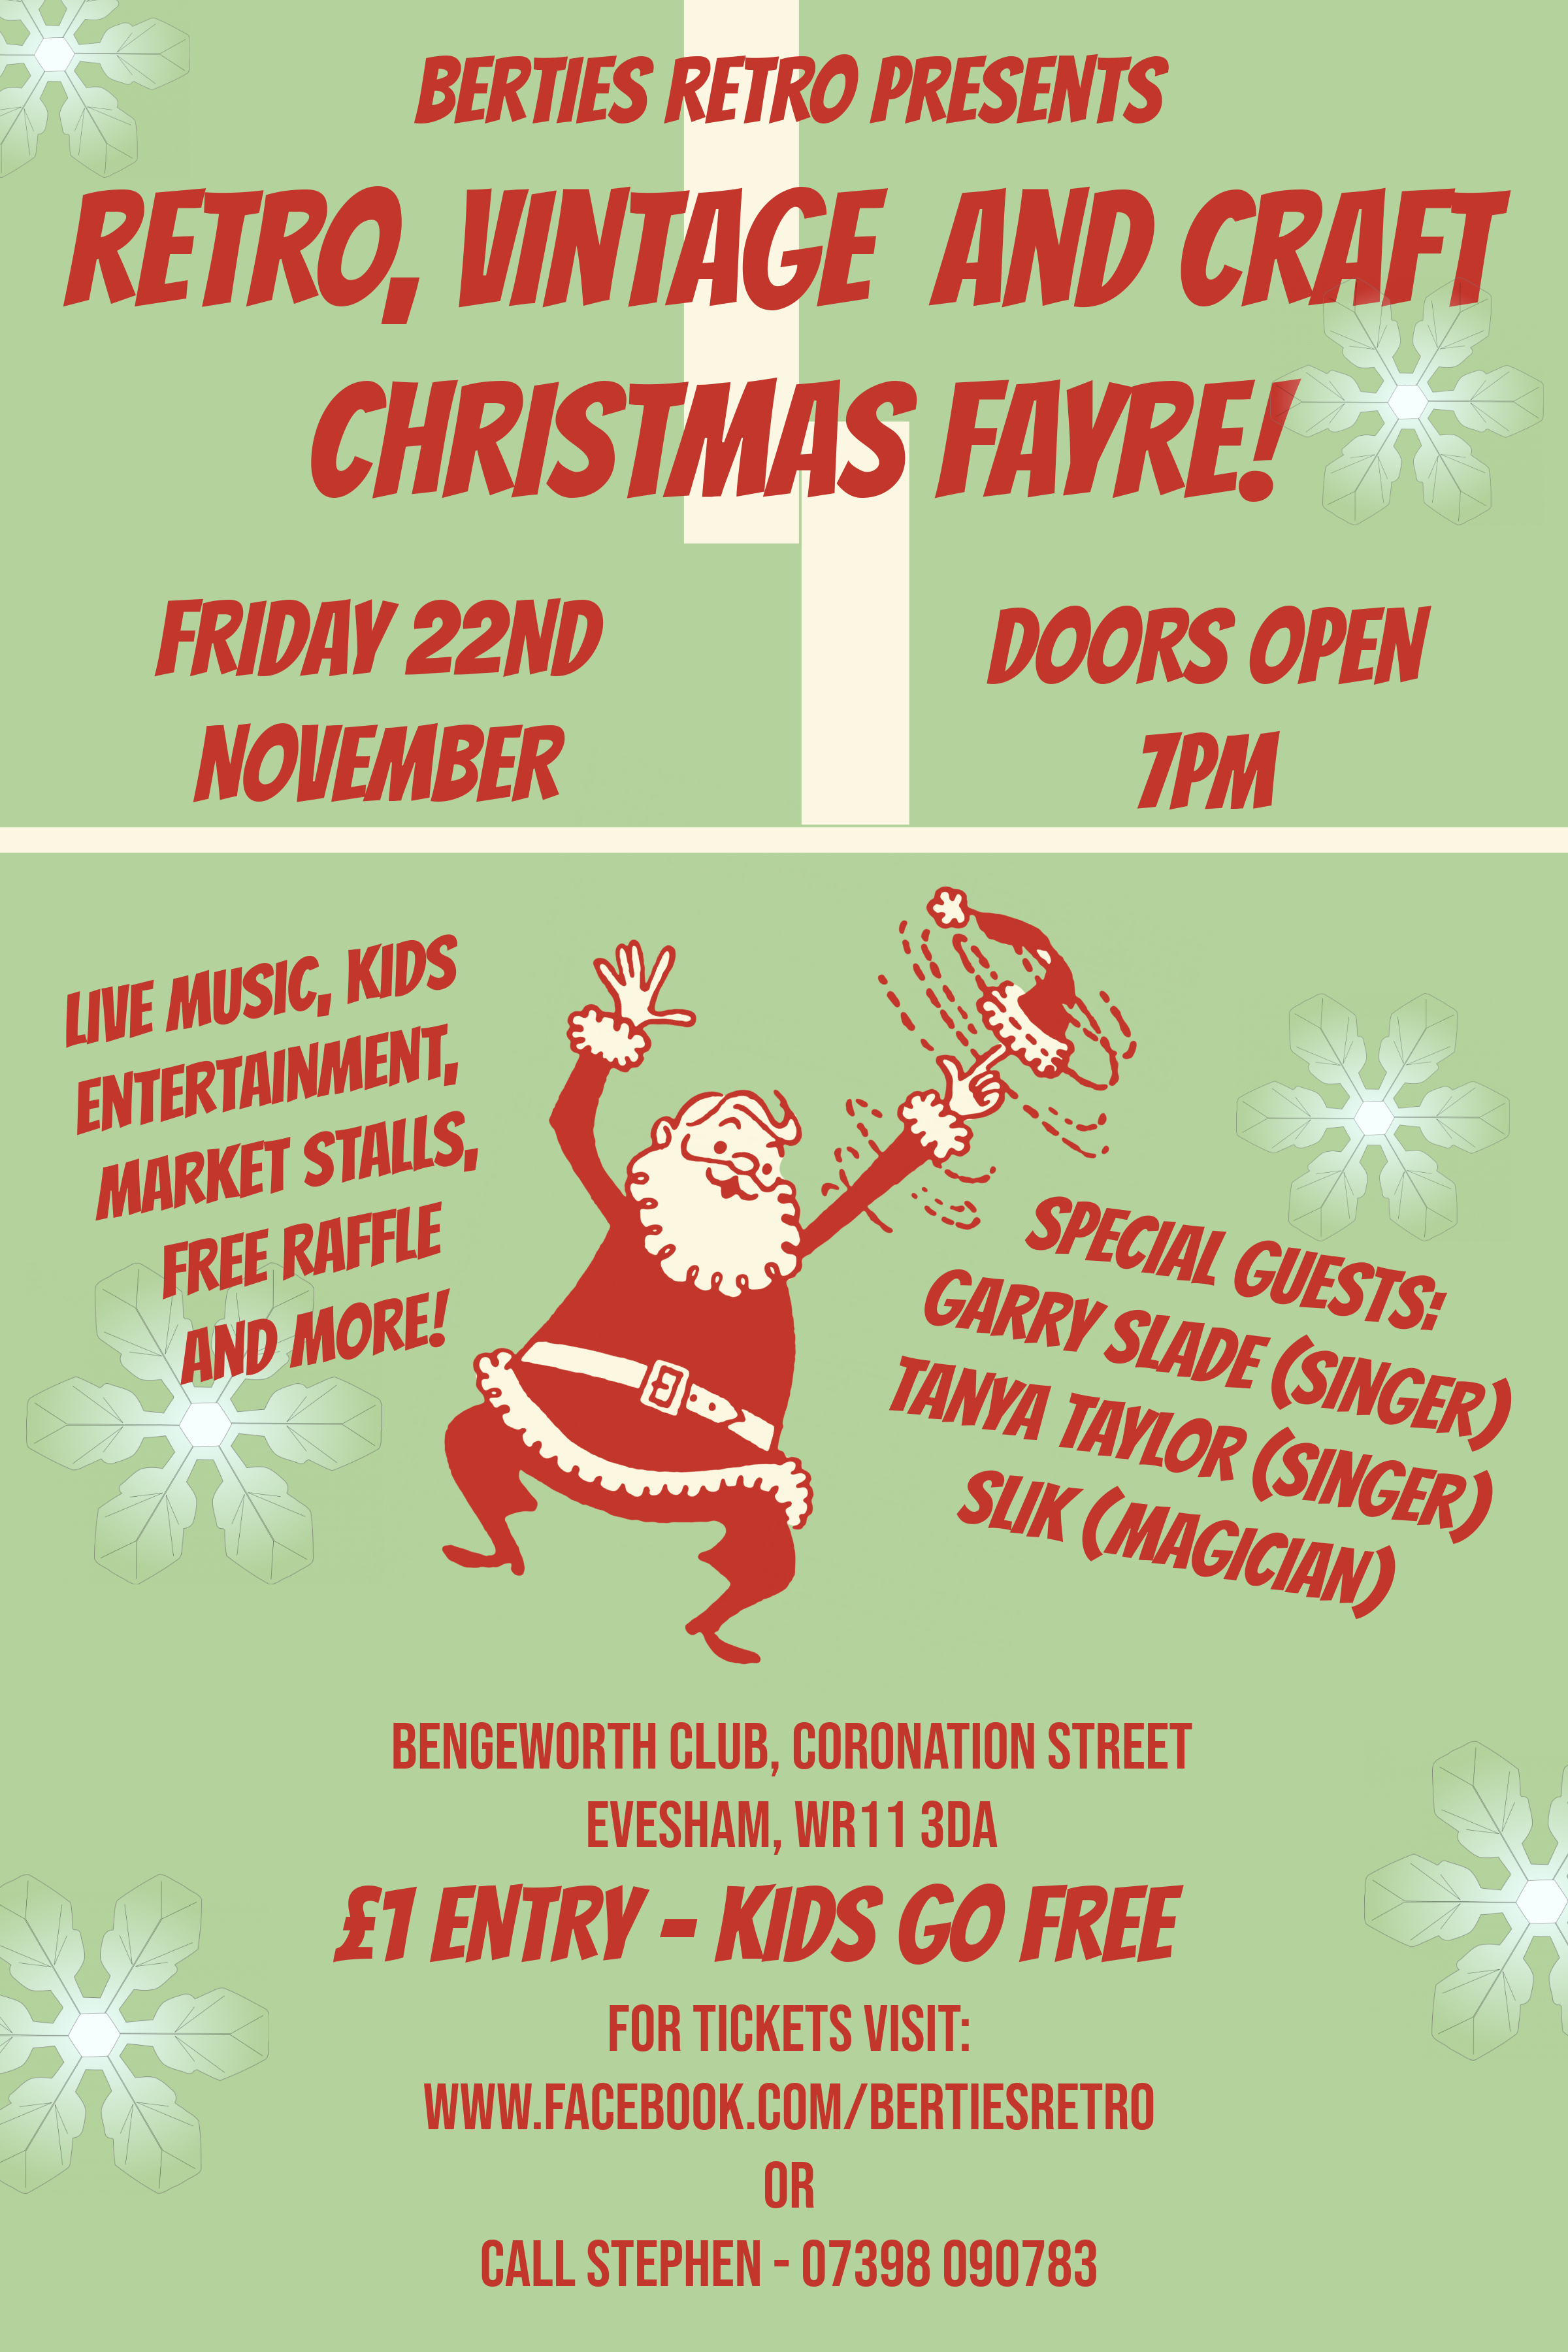 Berties Retro, Vintage and Crafts Christmas Fayre